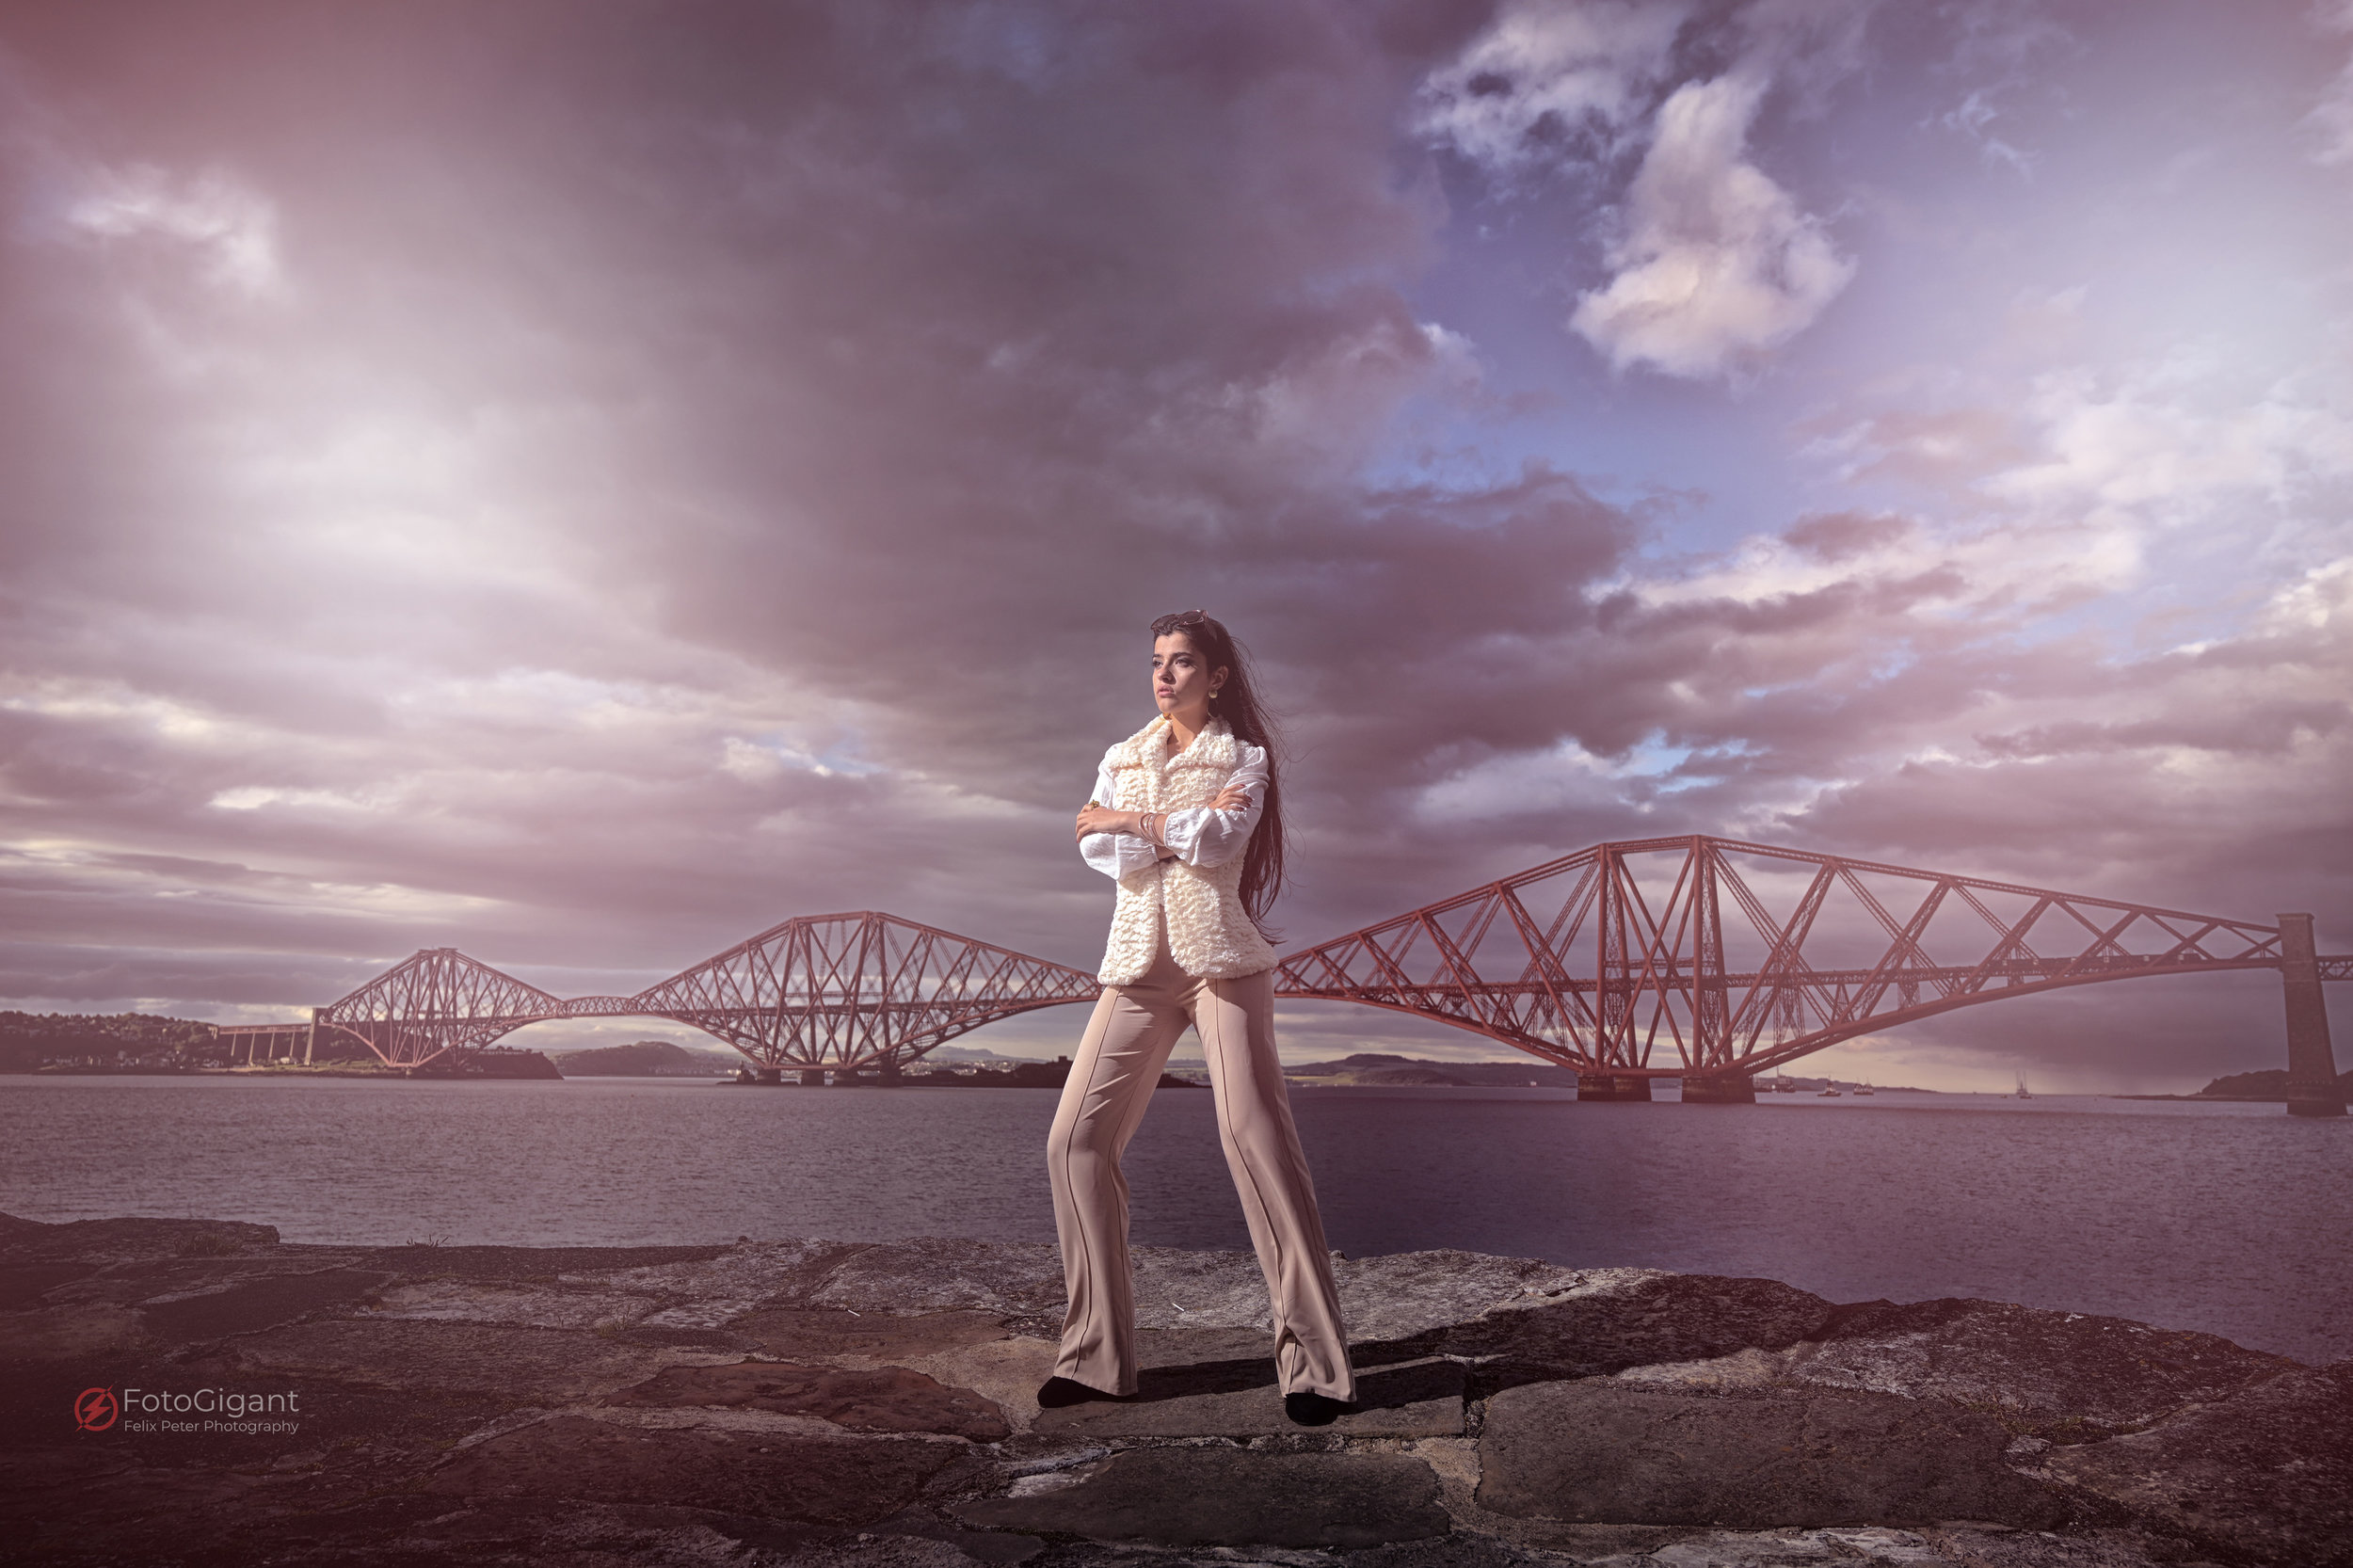 Late afternoon we drove to the sweet little village  SOUTH QUEENSFERRY  where we had our Airbnb directly in front of the legendary FORTH BRIDGE. After a nice italian dinner in a local restaurant, strength was back for more photoshoots here at bridge.